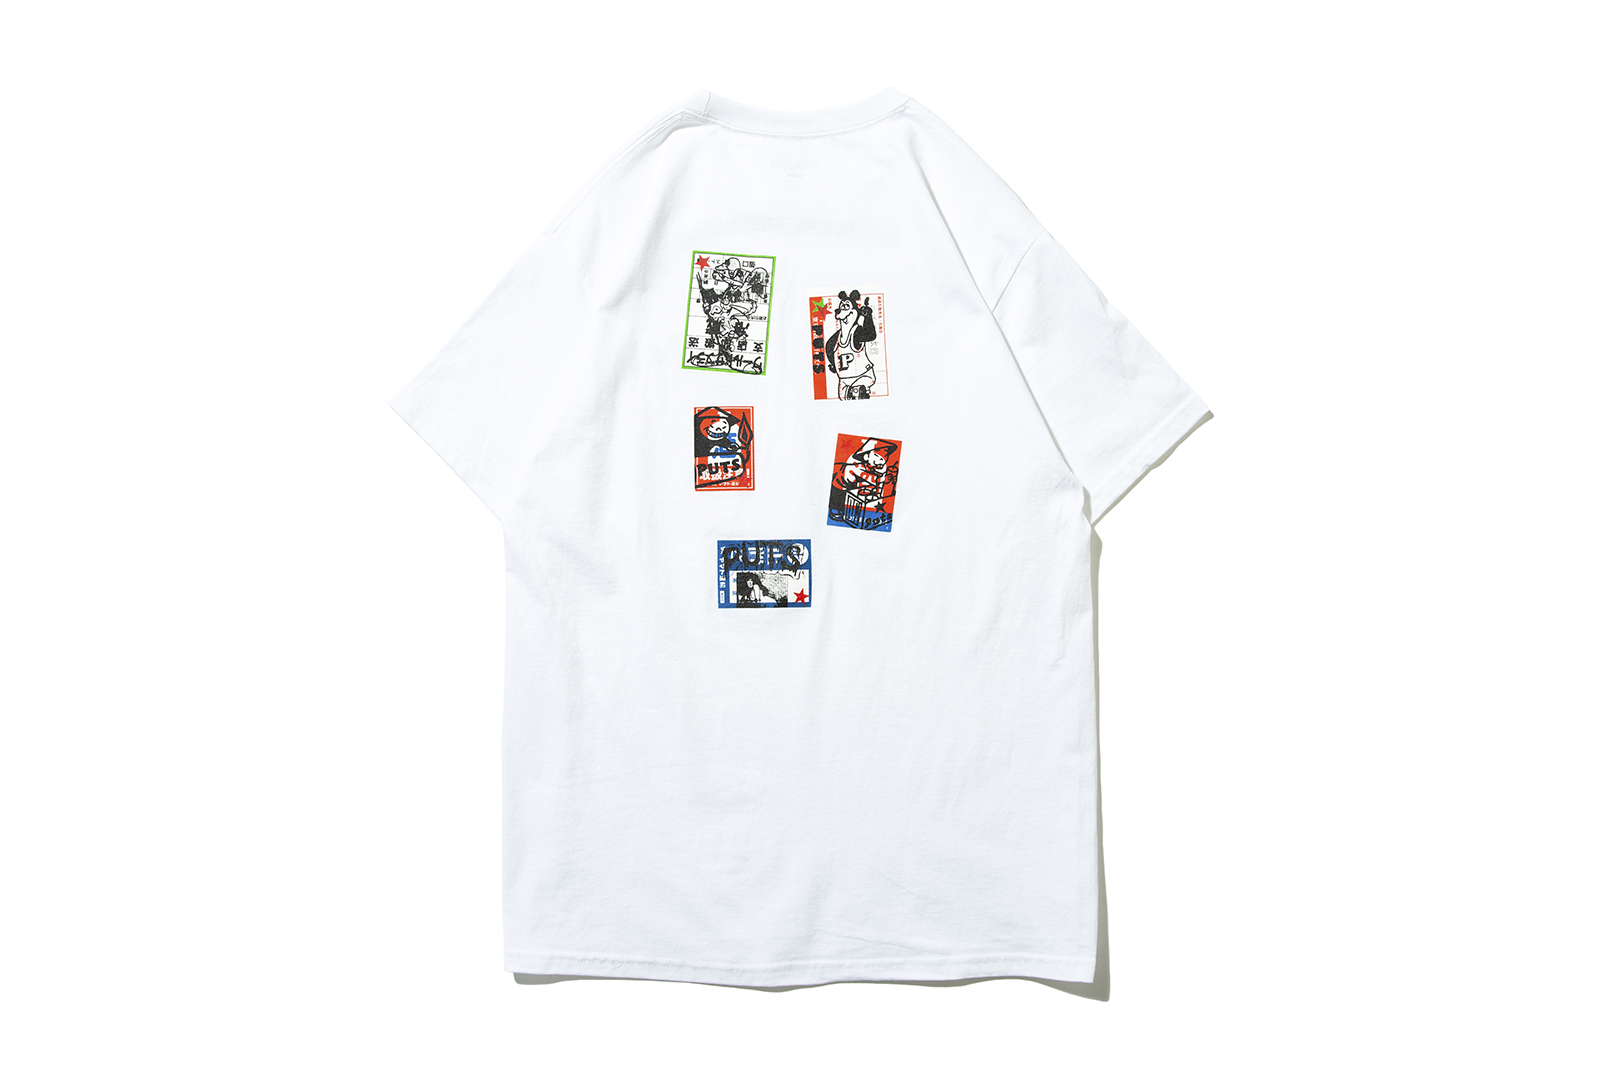 puts-stickers-tee_p1